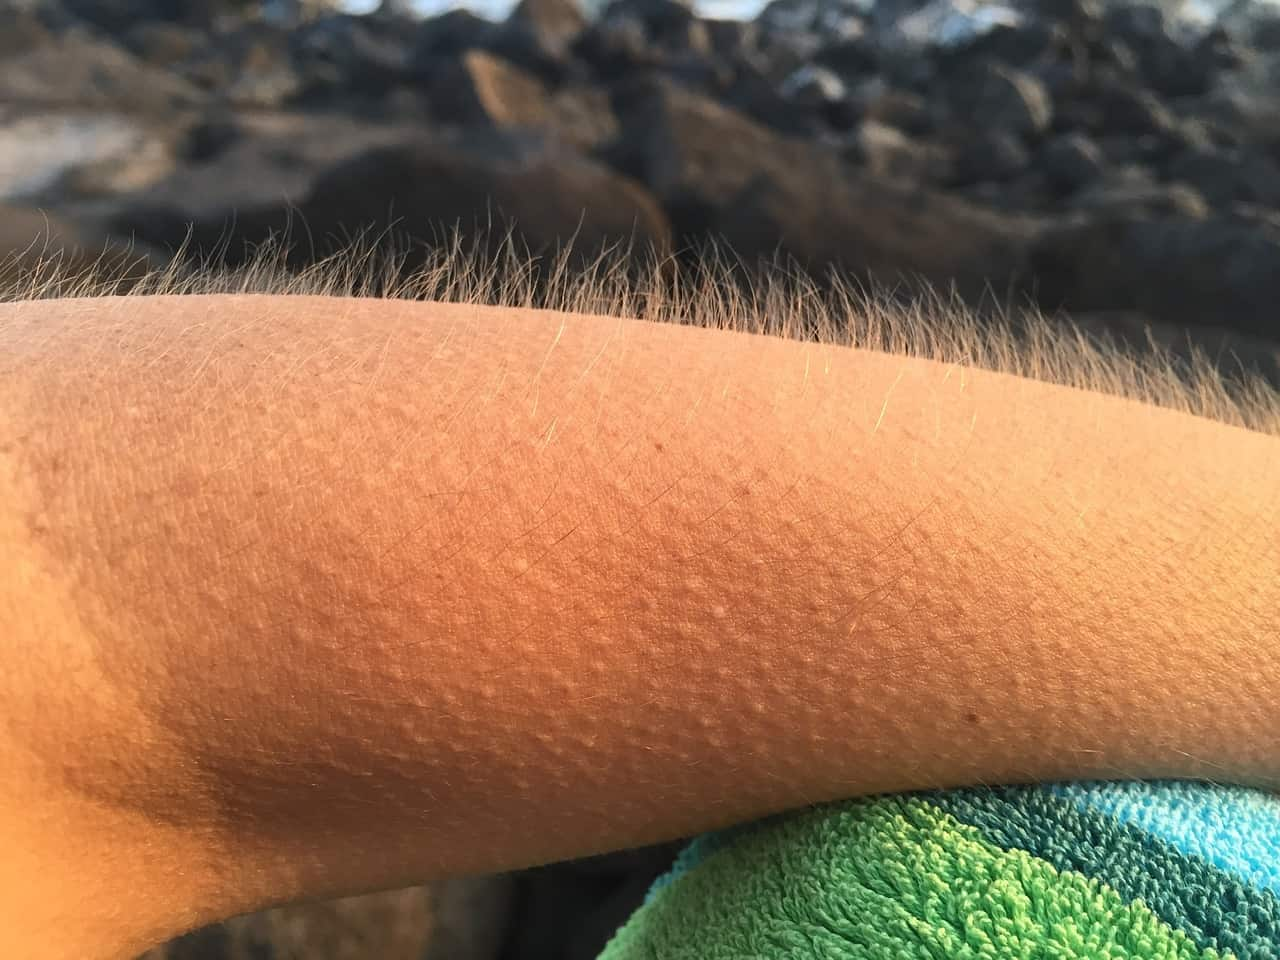 goosebumps, arm, human body facts